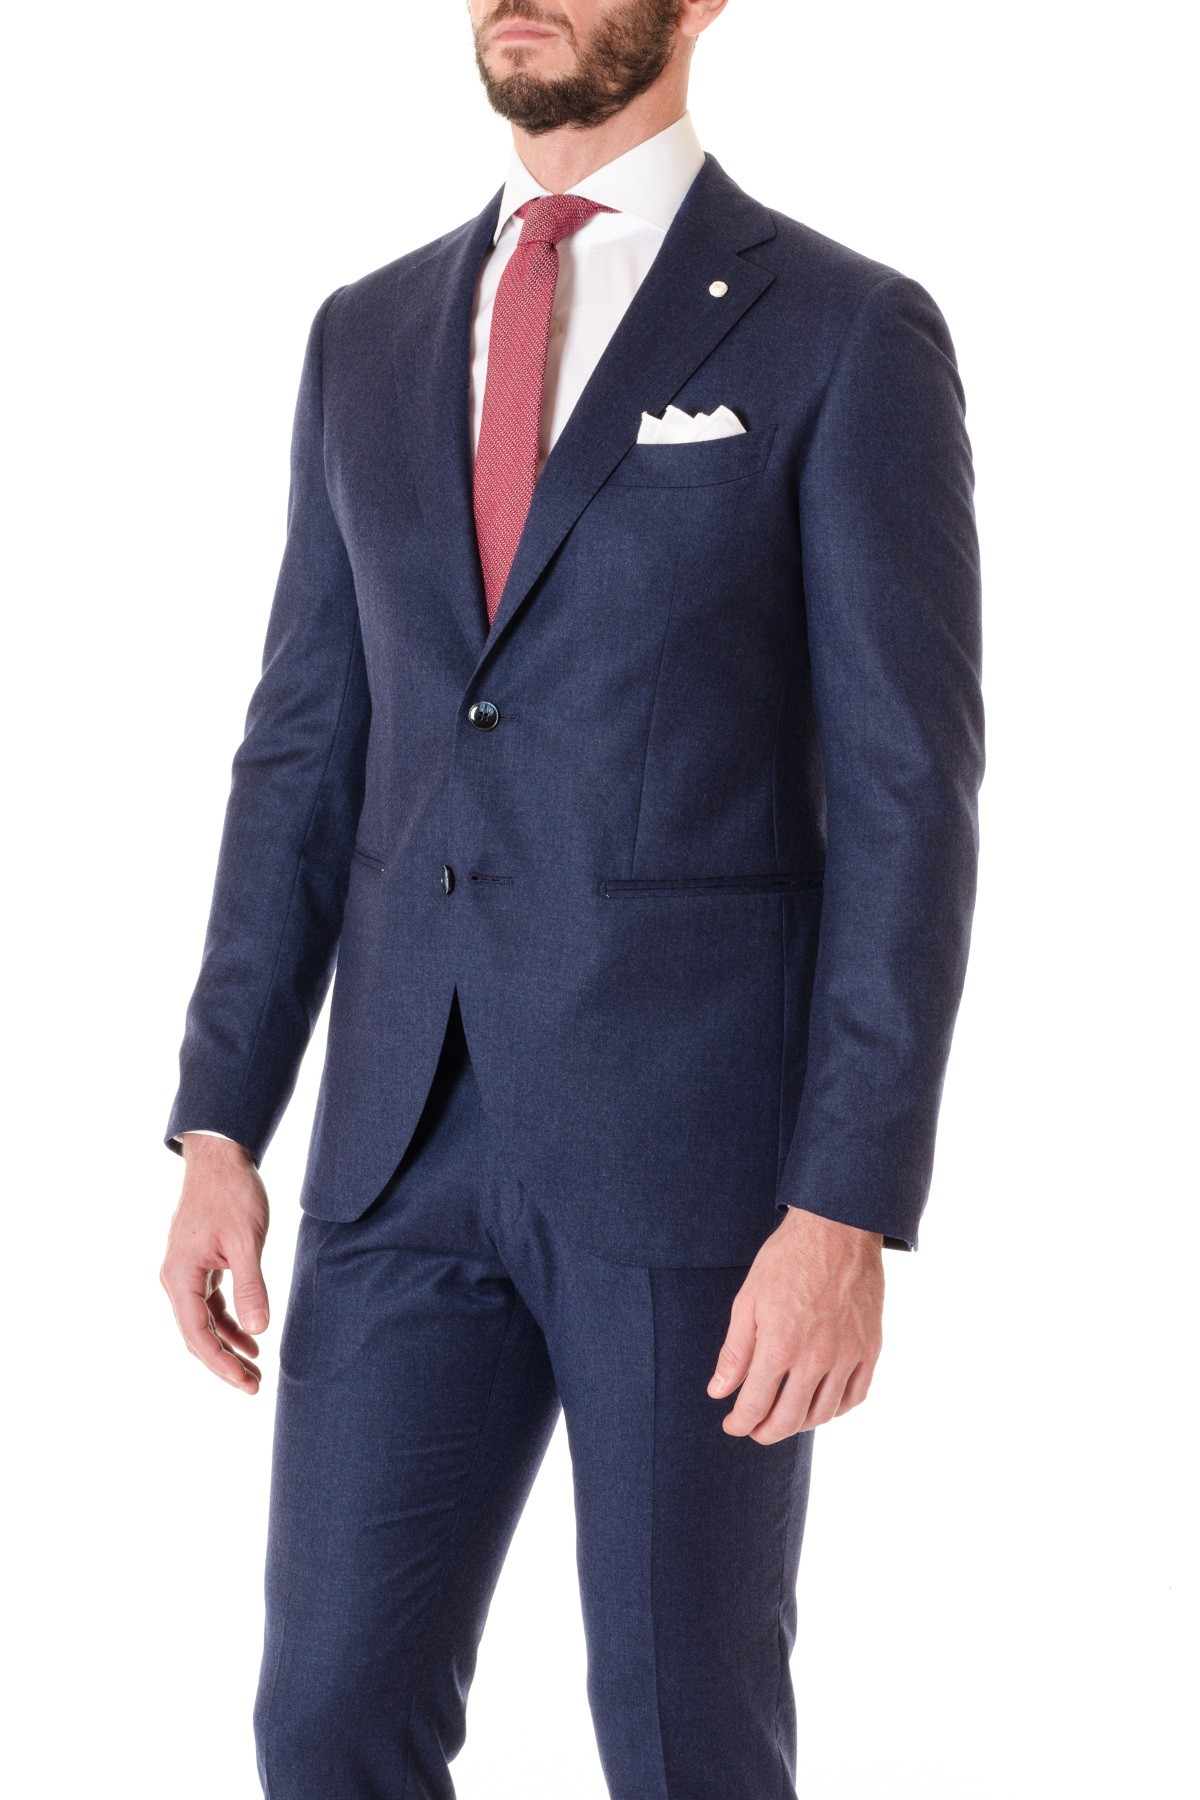 Suit LUIGI BIANCHI MANTOVA wool and silk fabric F/W 16-17 - Rione ...